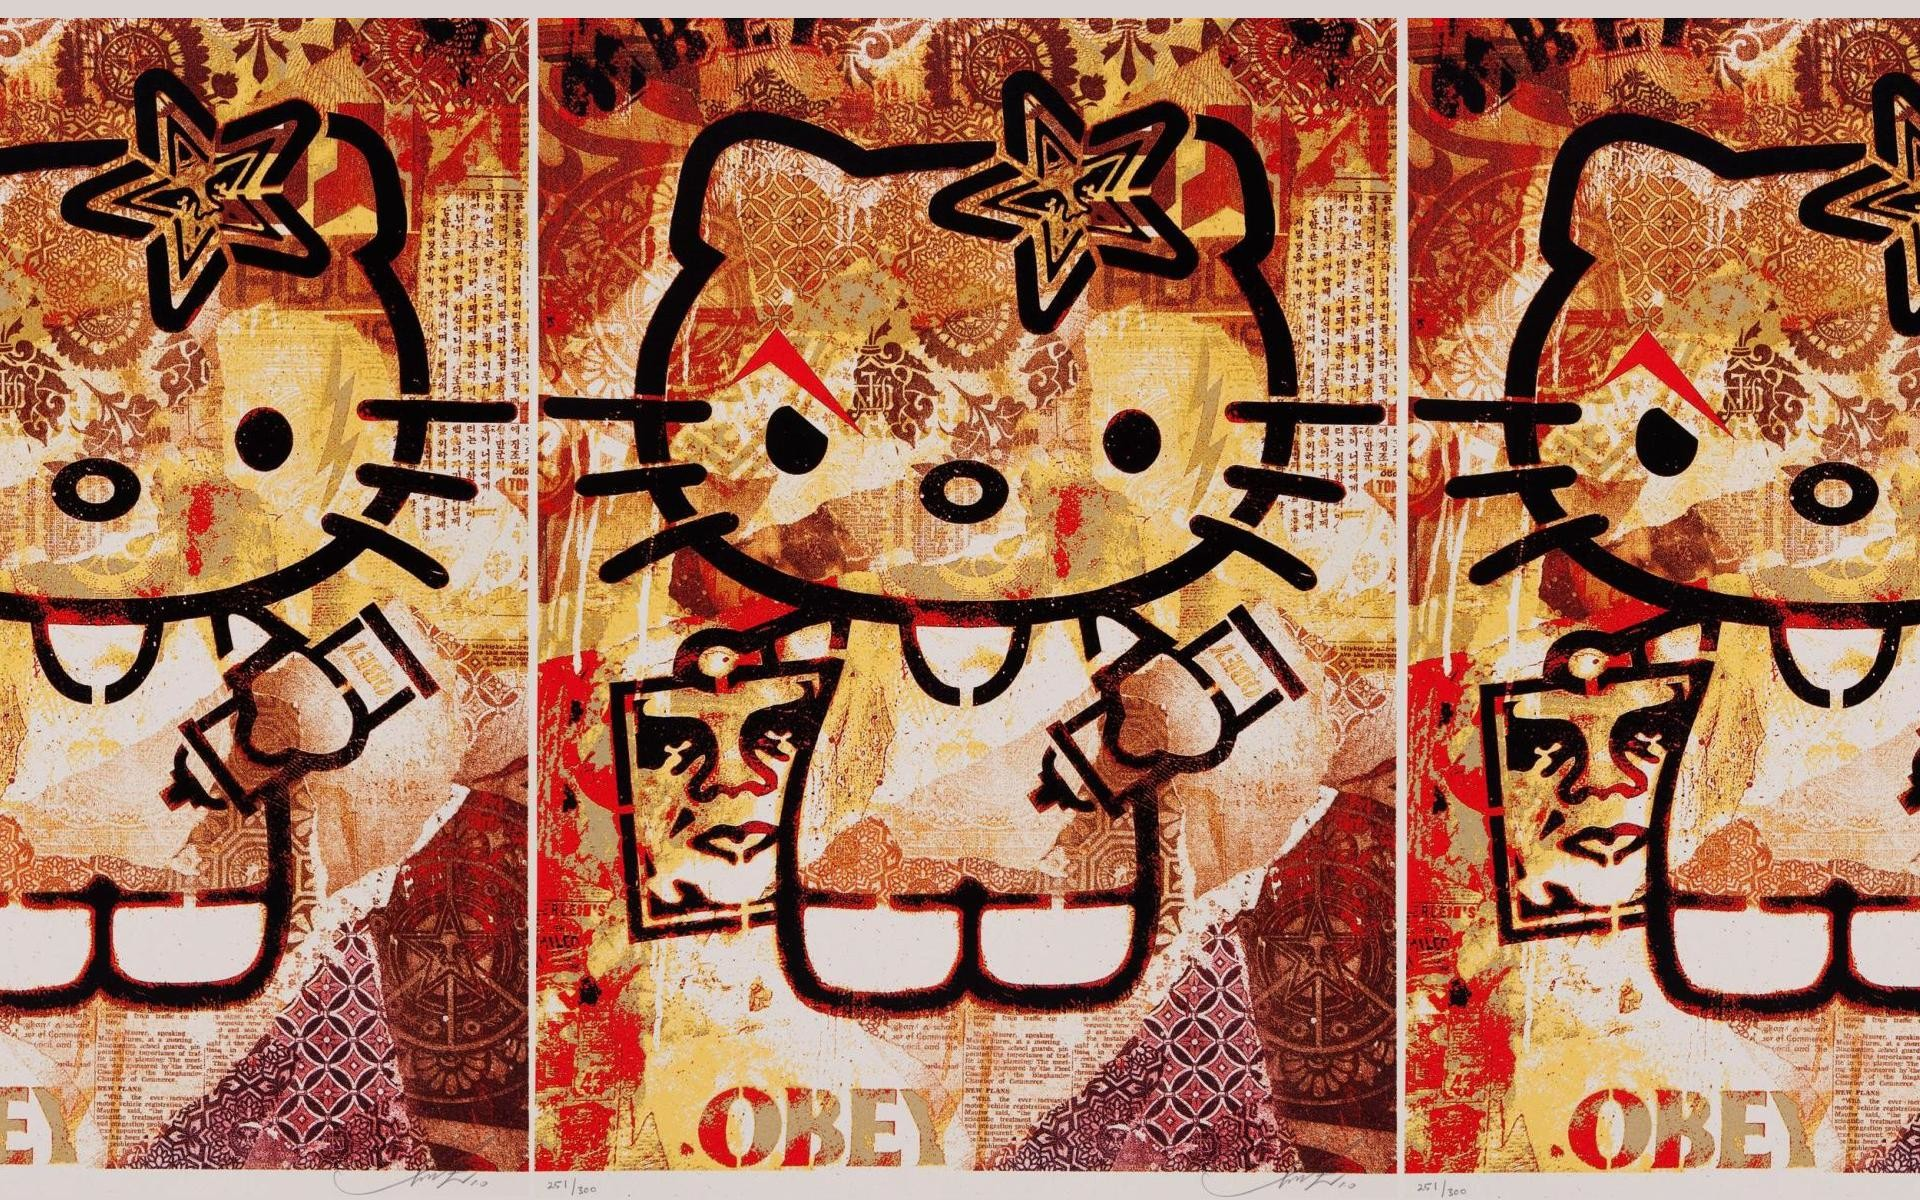 Obey Hello Kitty Wallpapers , Obey Hello Kitty Myspace Backgrounds .